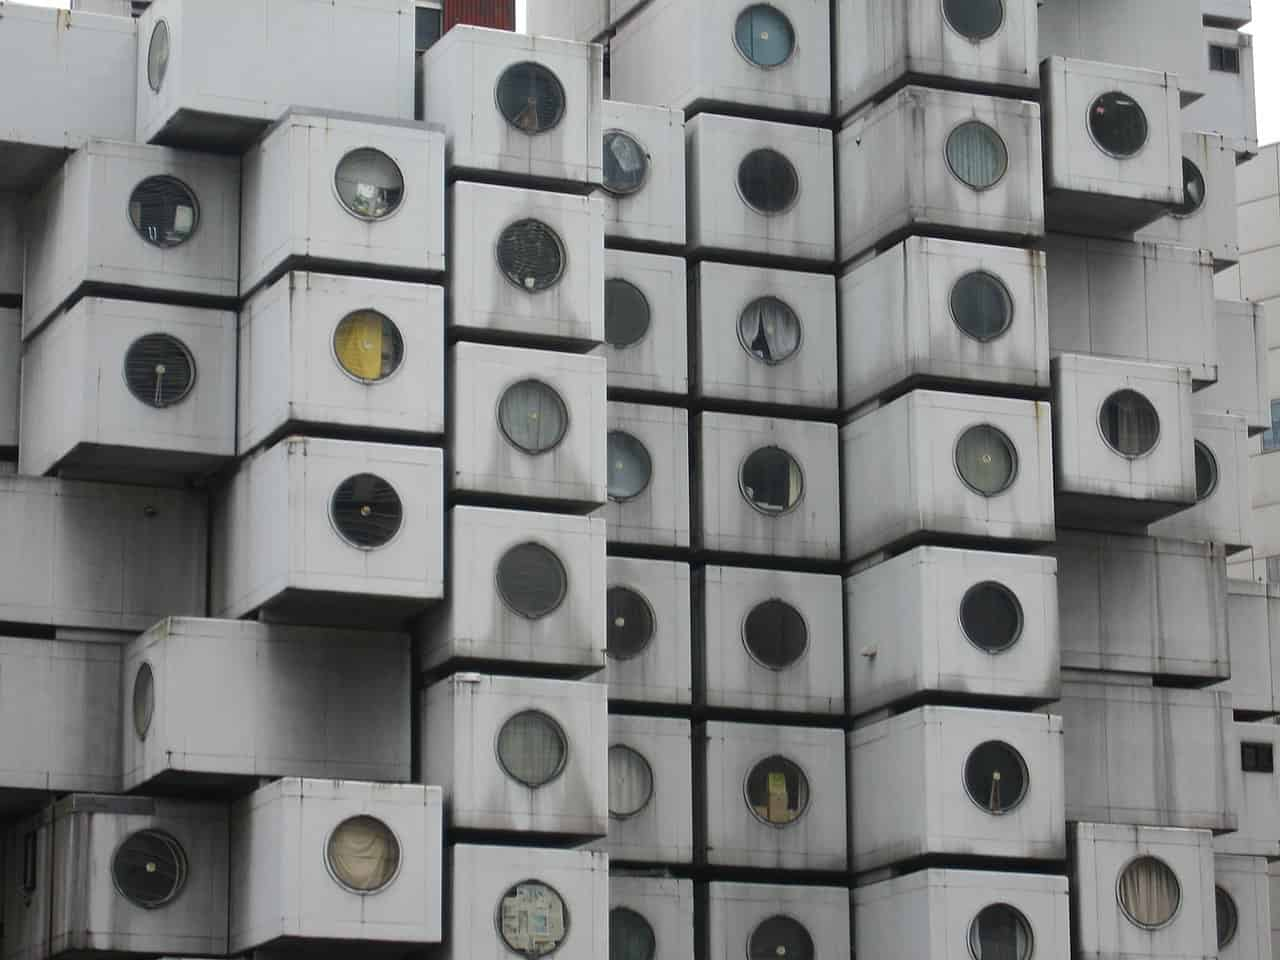 capsule tower, tokyo facts